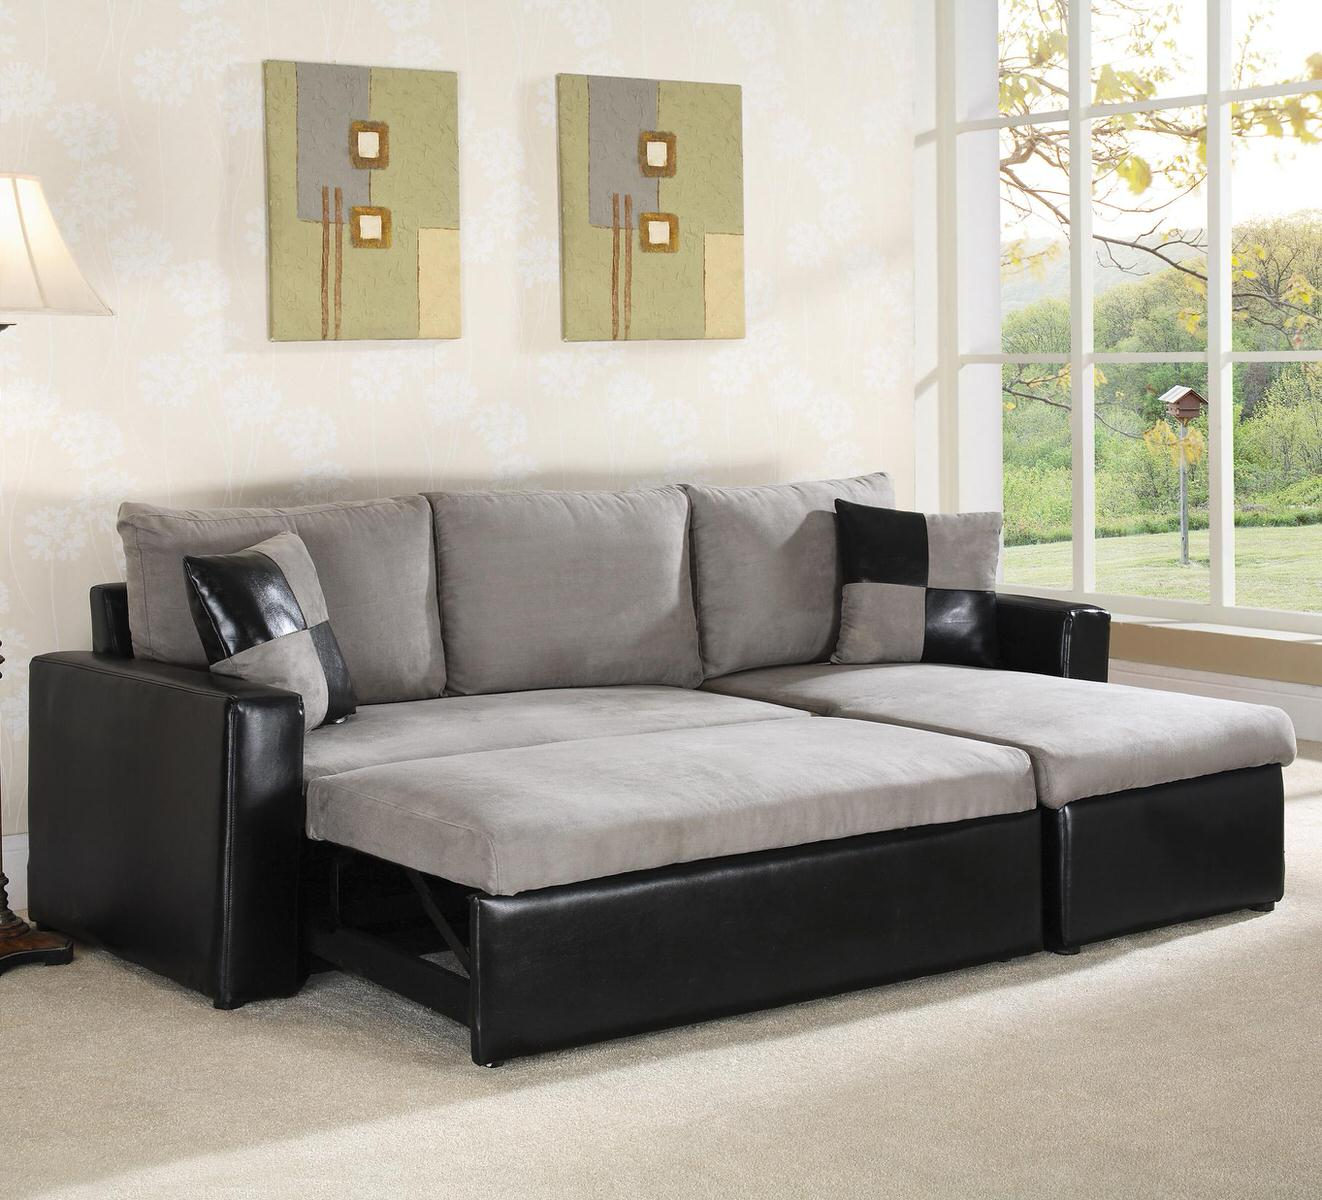 64008 sectional sofa sleeper by world imports Sleeper sectional